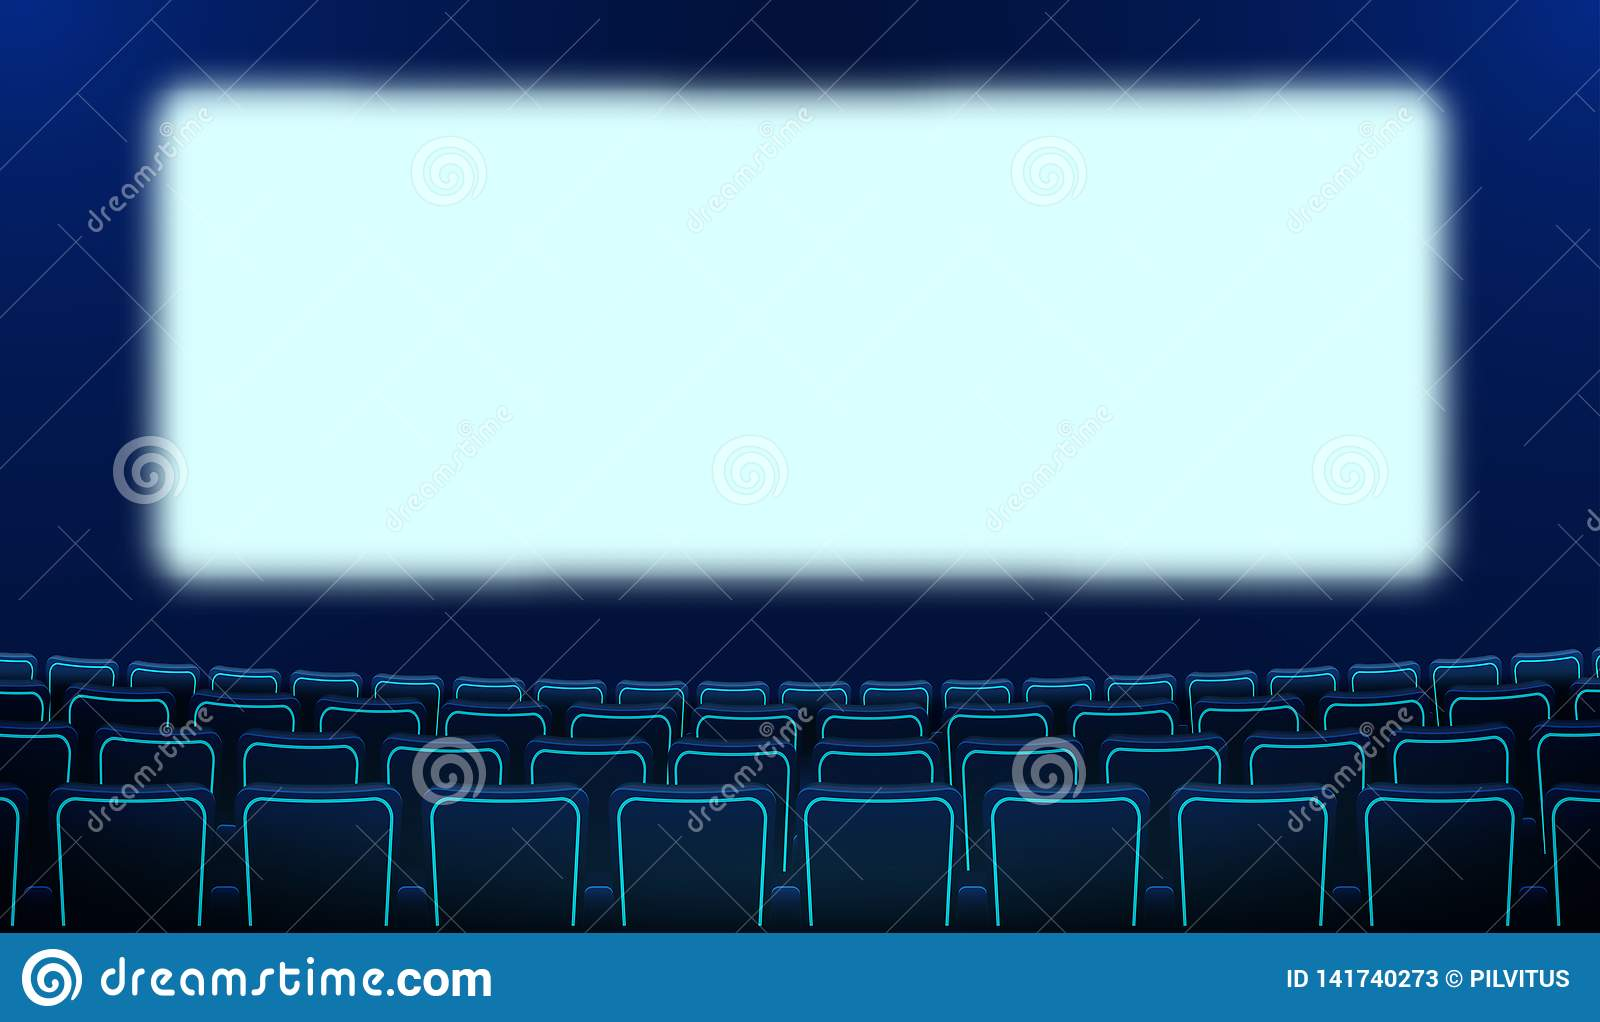 Realistic Rows Of Blue Chairs Cinema And White Blank Screen In The Darkness Cinema Auditorium And Movie Theater Seats Facing Stock Illustration Illustration Of Premiere Beholder 141740273